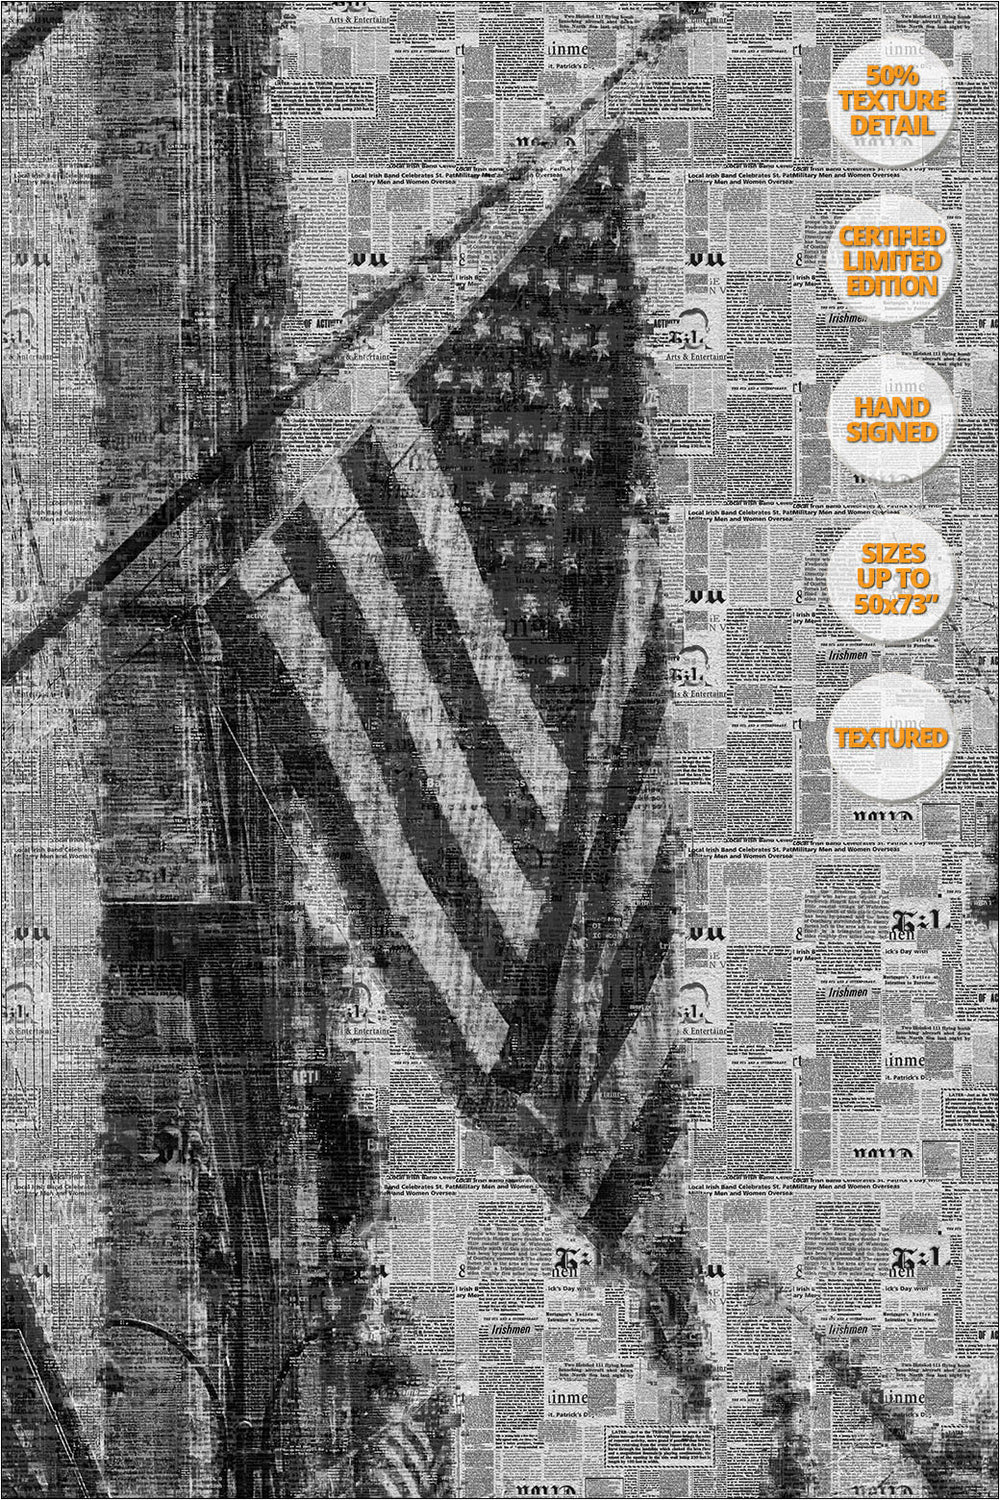 Flag in the Fifth Avenue, NYC. Already Written Series. | 50% Detail.